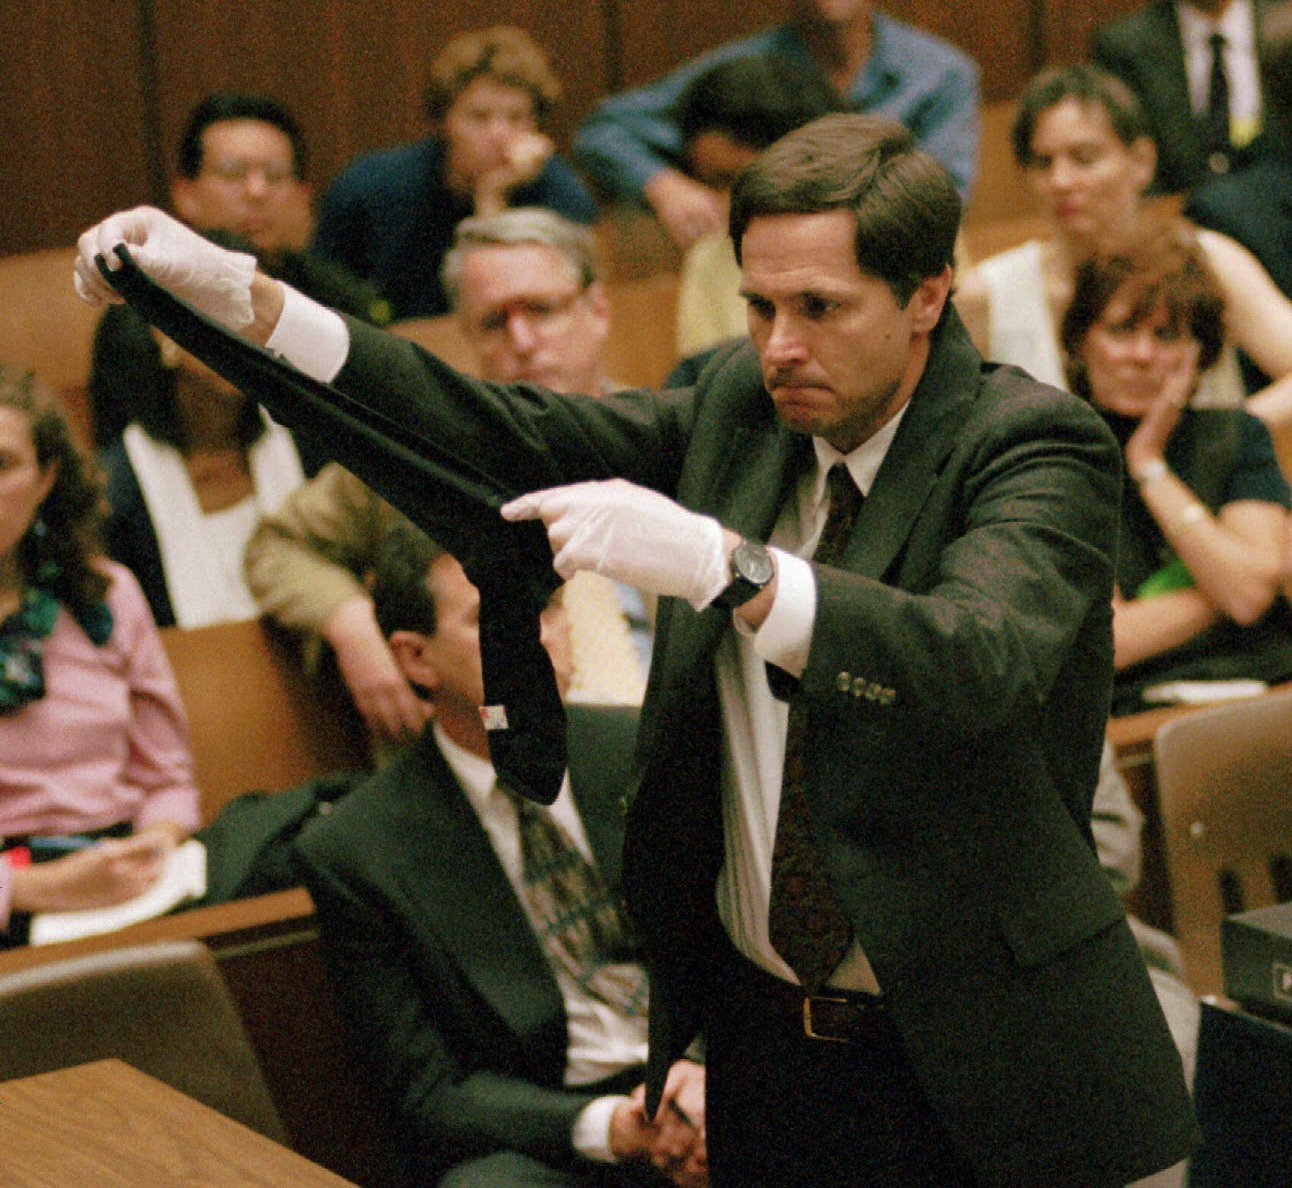 Memorable Images From Oj Simpson Case